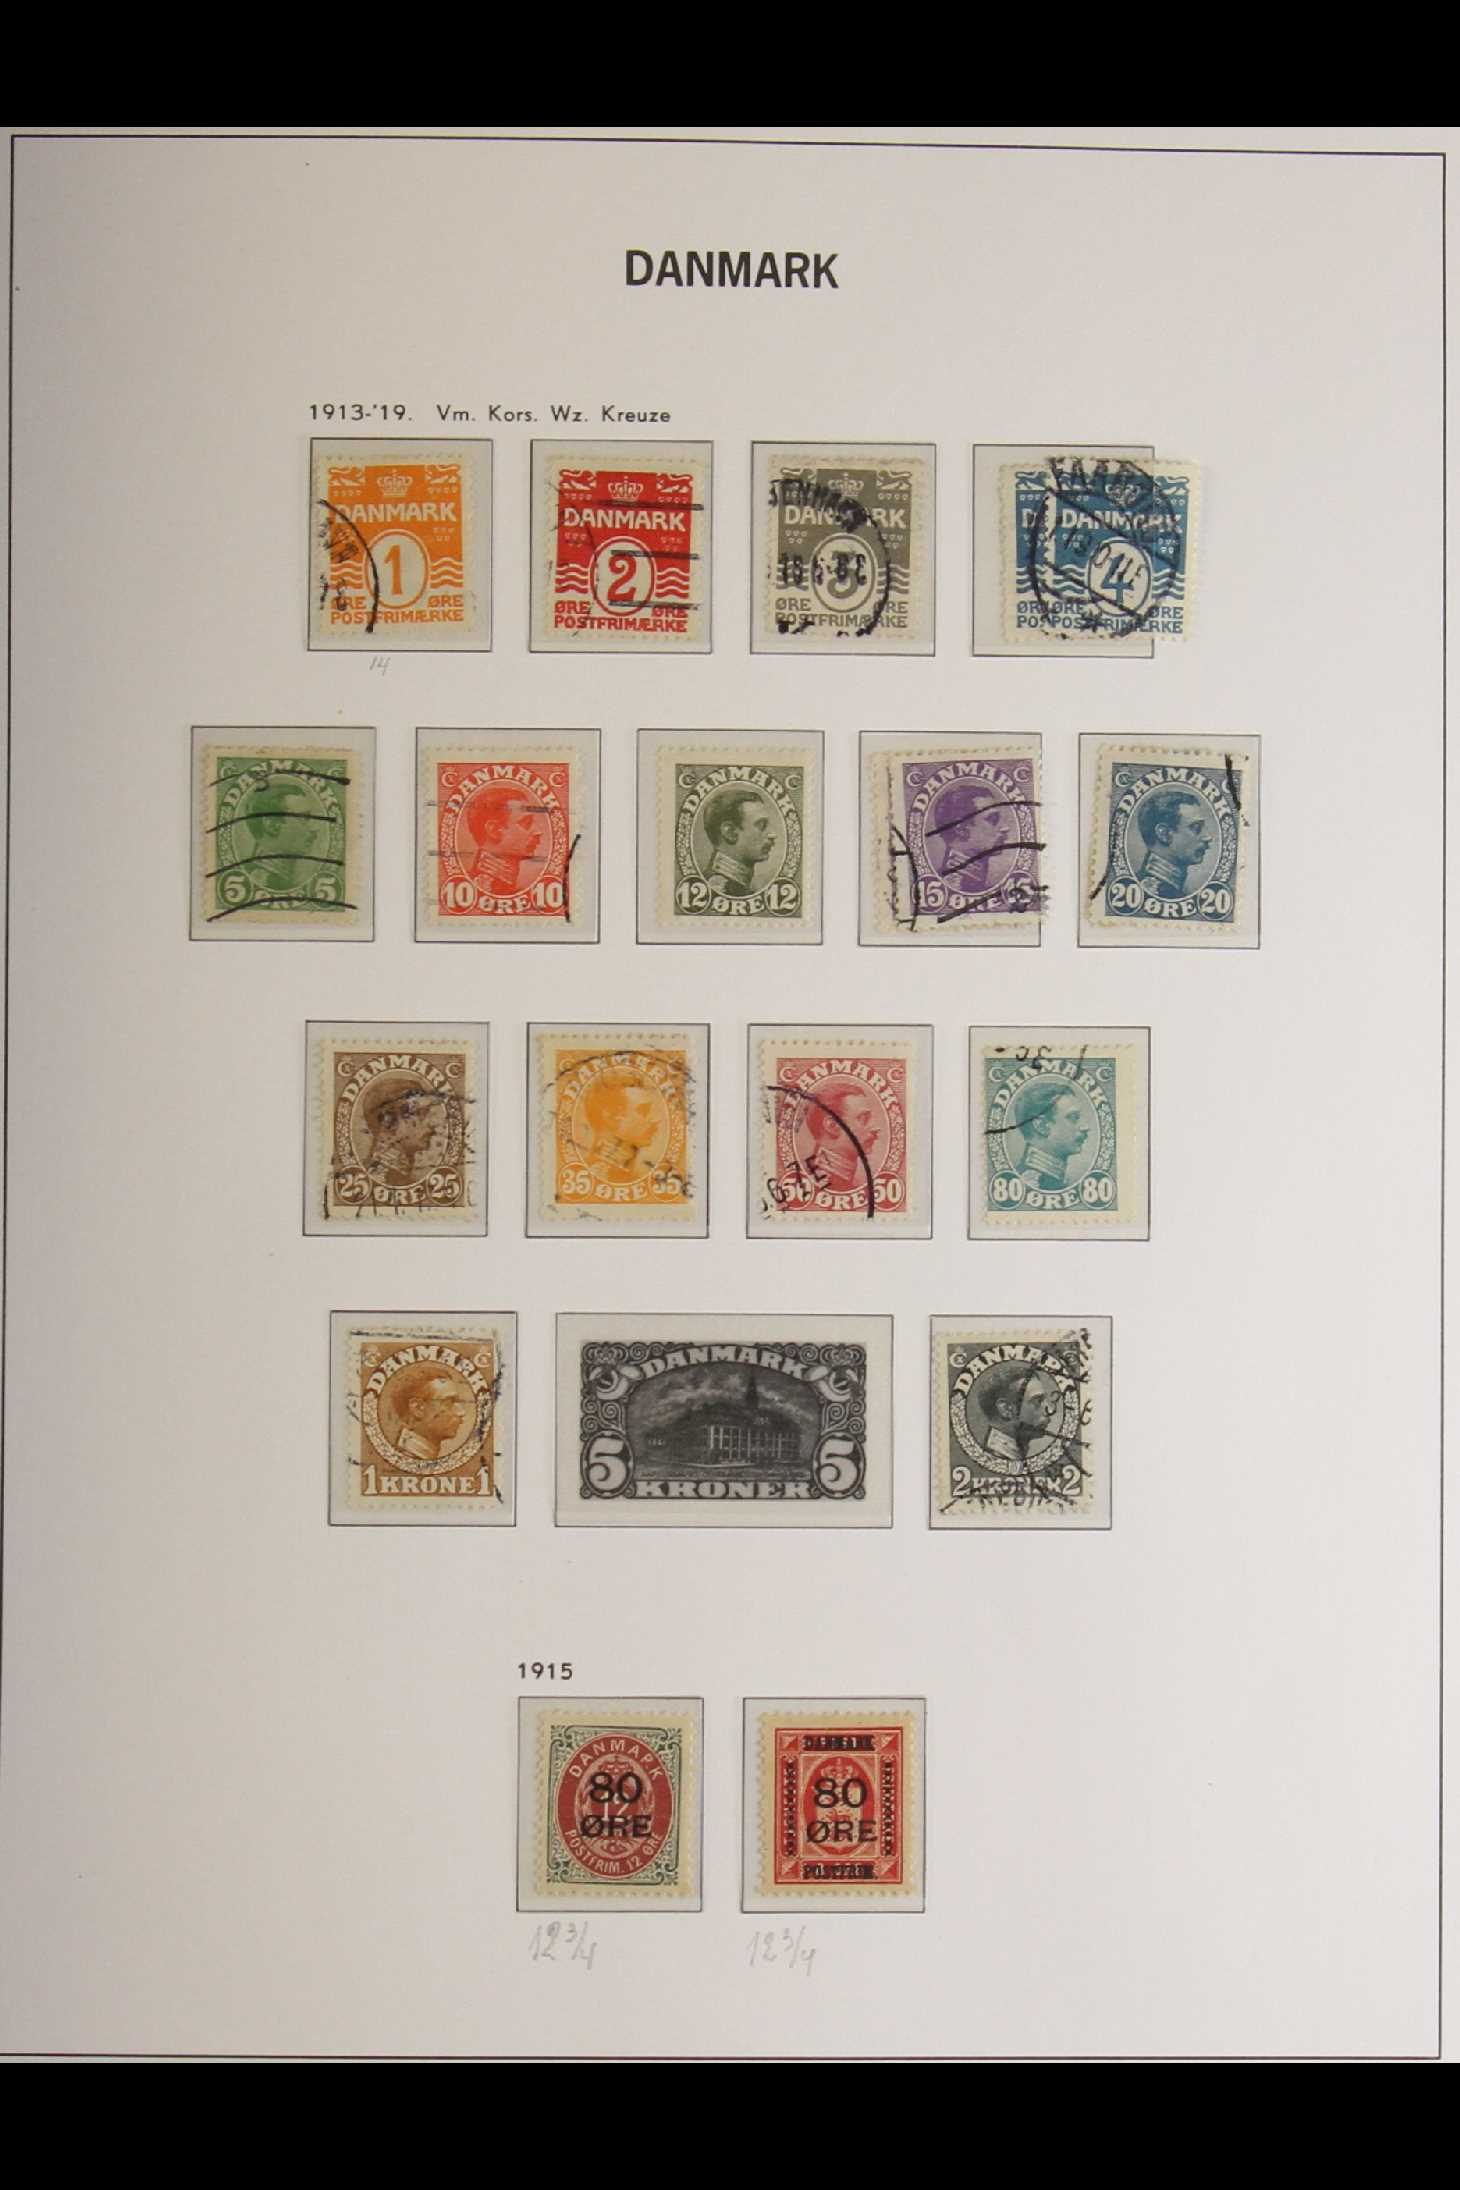 DENMARK 1882-1969 mint and used collection in an album incl. 1882 (small corner figures) 5 ore and - Image 14 of 15